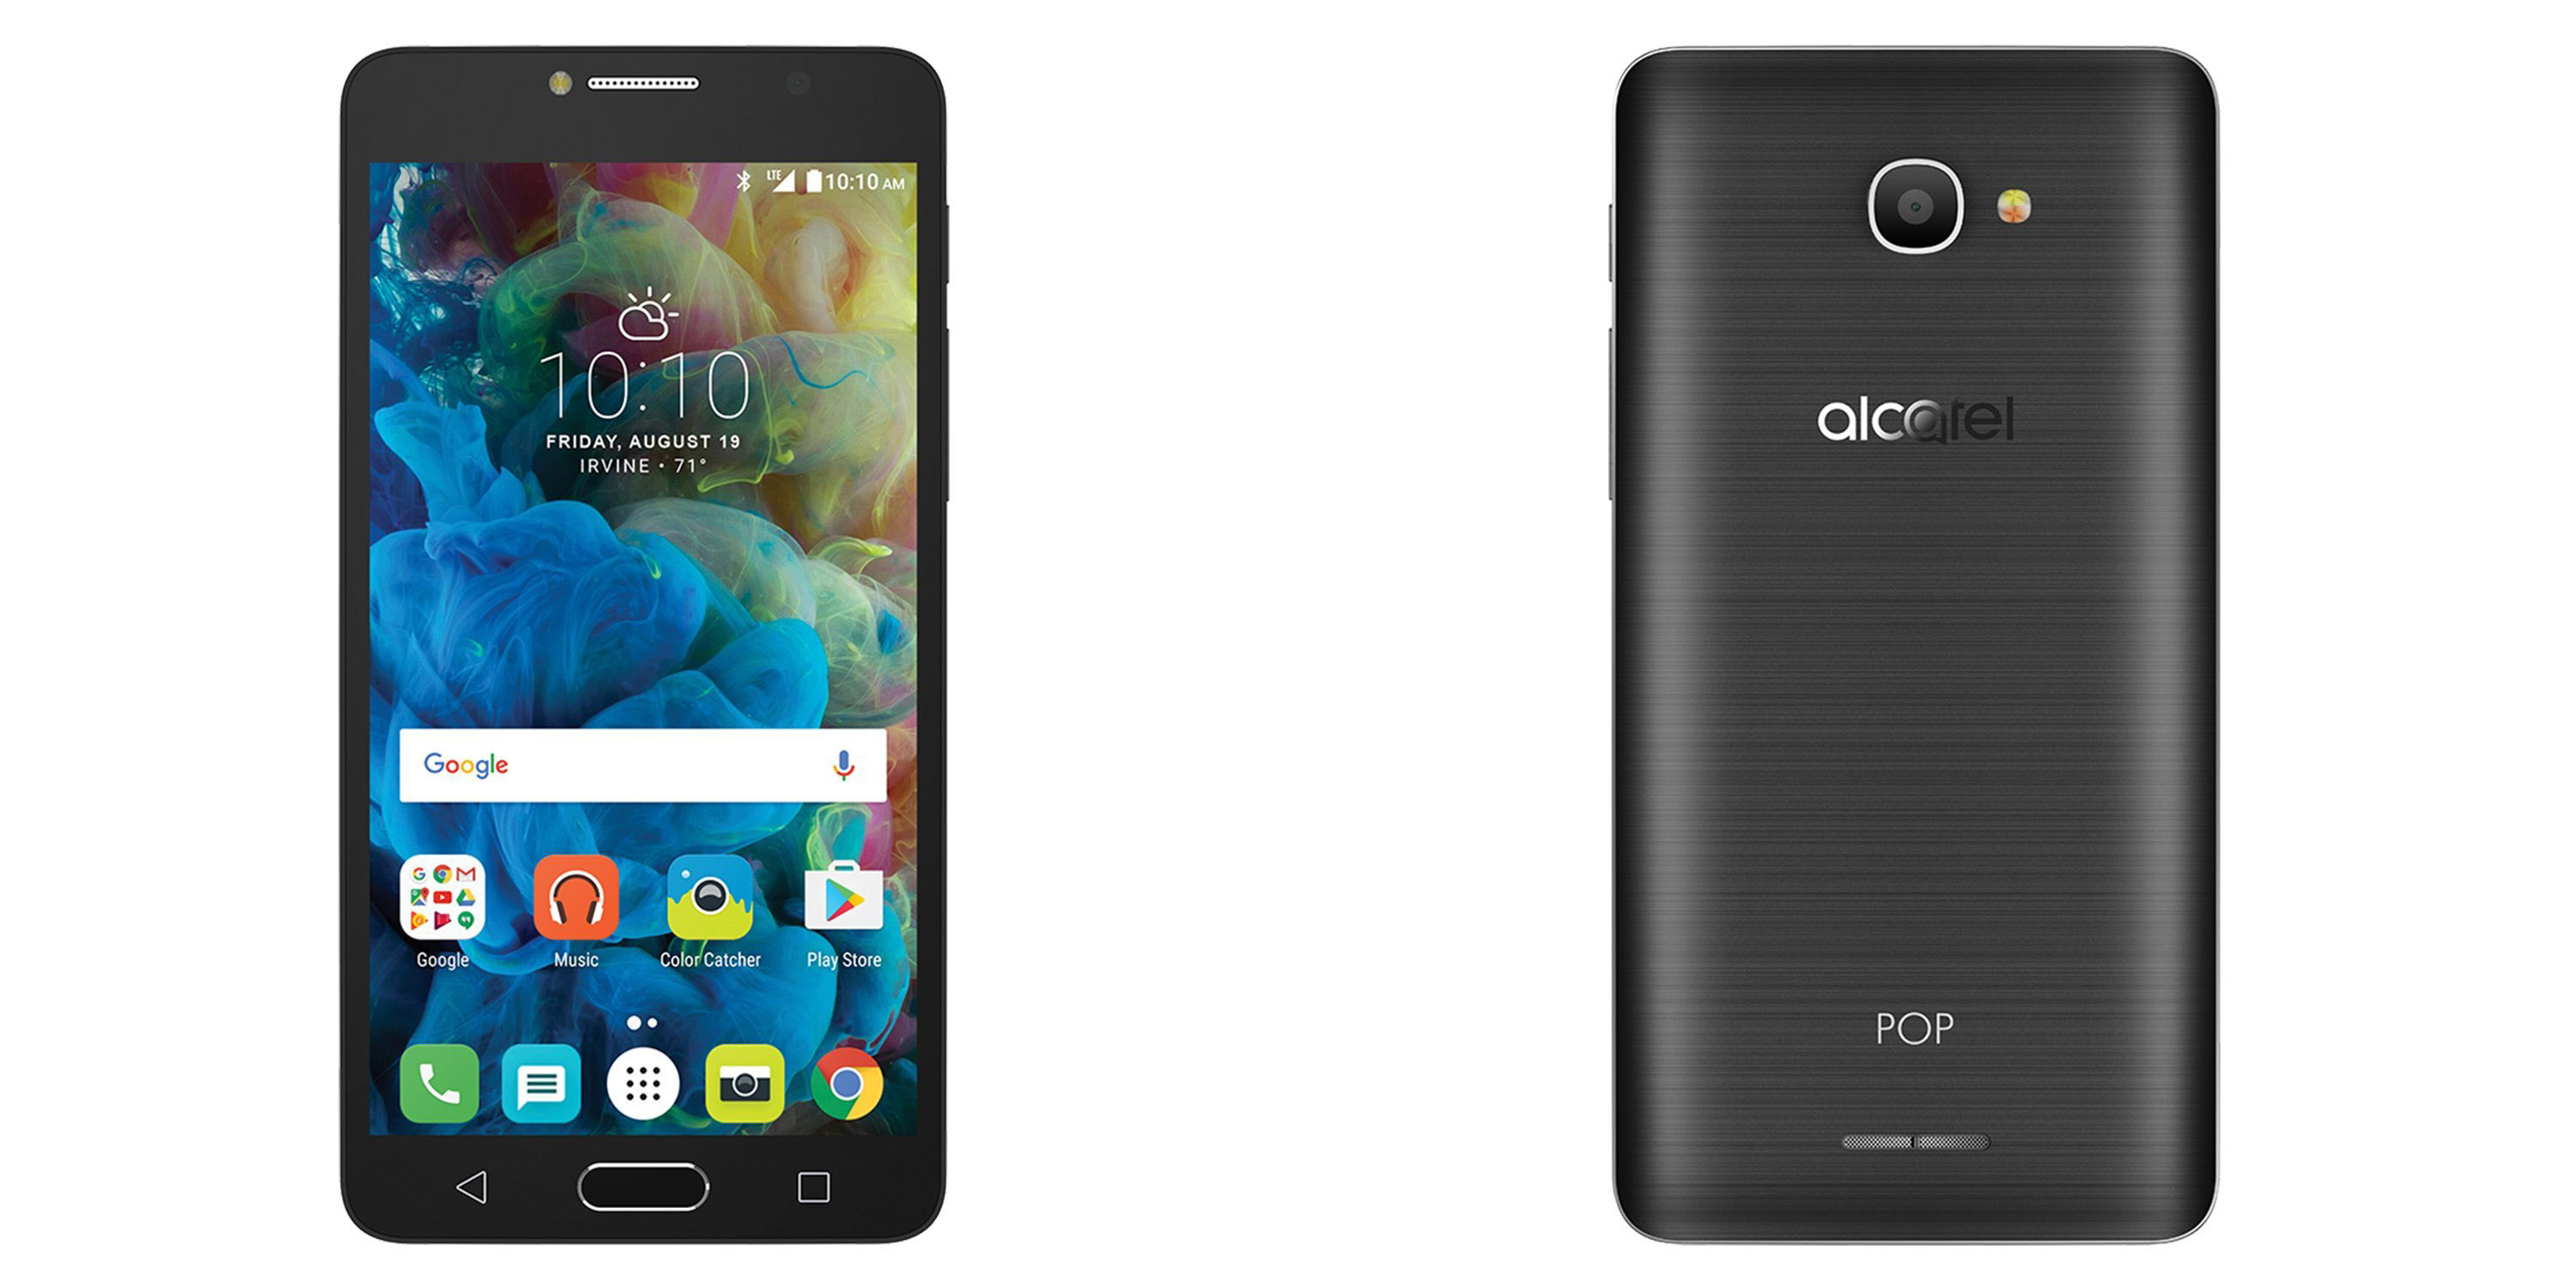 alcatel_pop_1